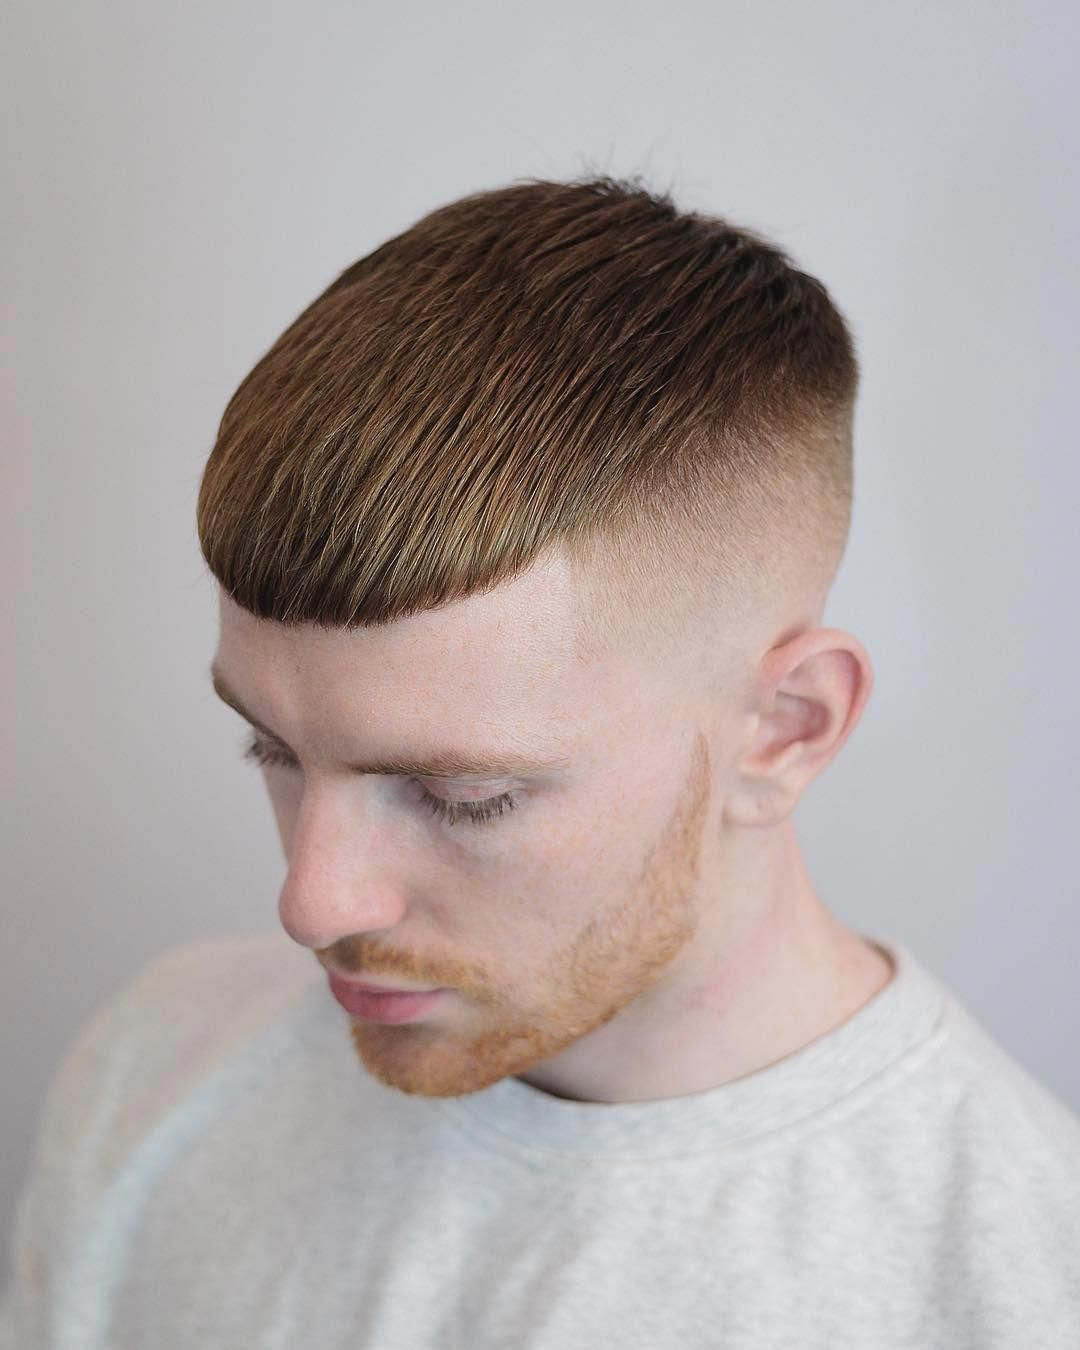 Hairstyles For Men With Thinning Hair On Crown Thin Hair Men Mens Haircuts Thin Hair Cool Hairstyles For Men